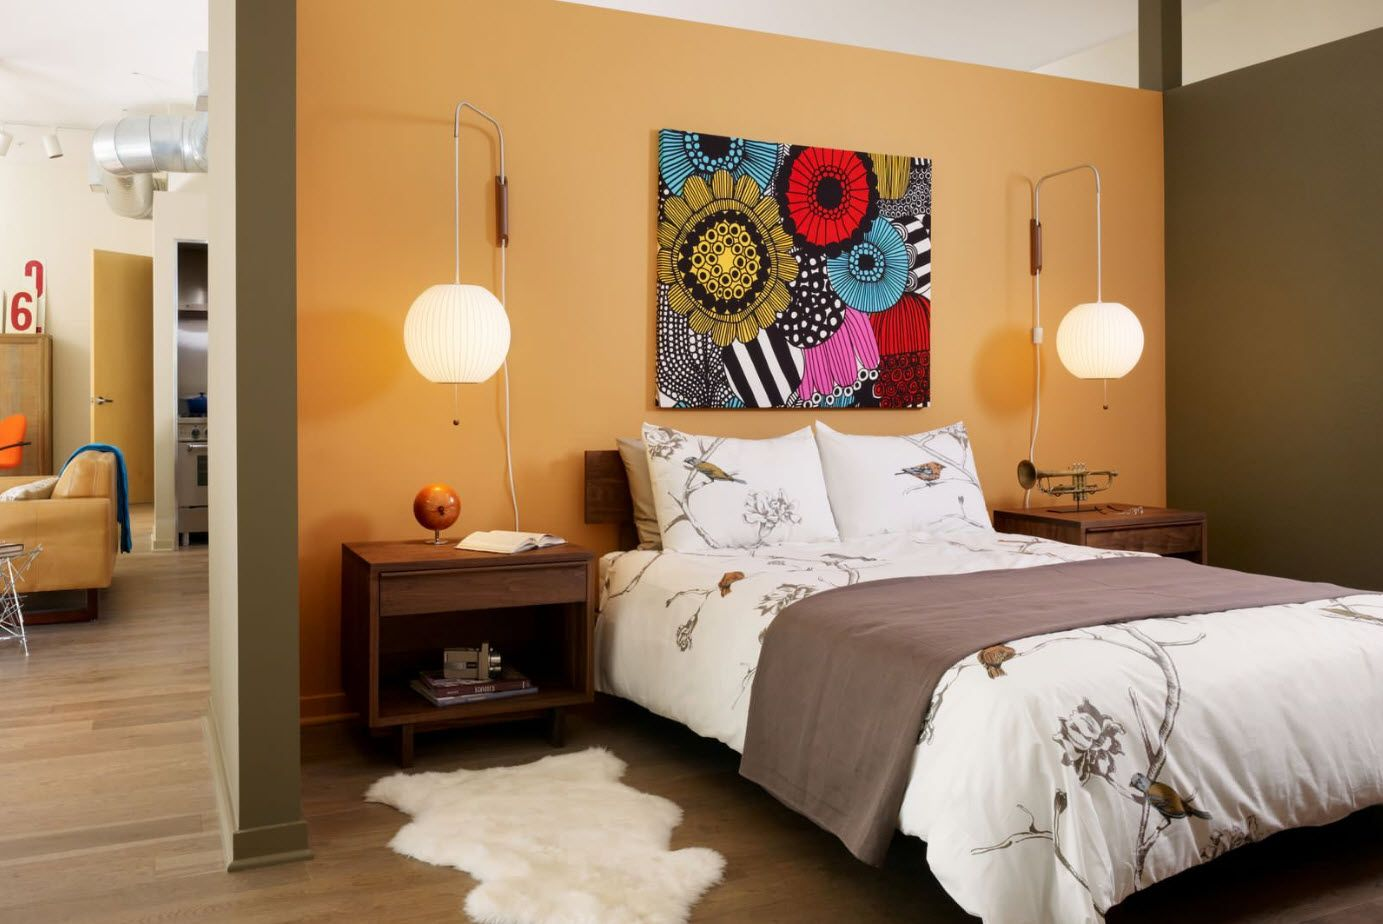 Nice expressionistic picture at the headboard and on peach colored wall